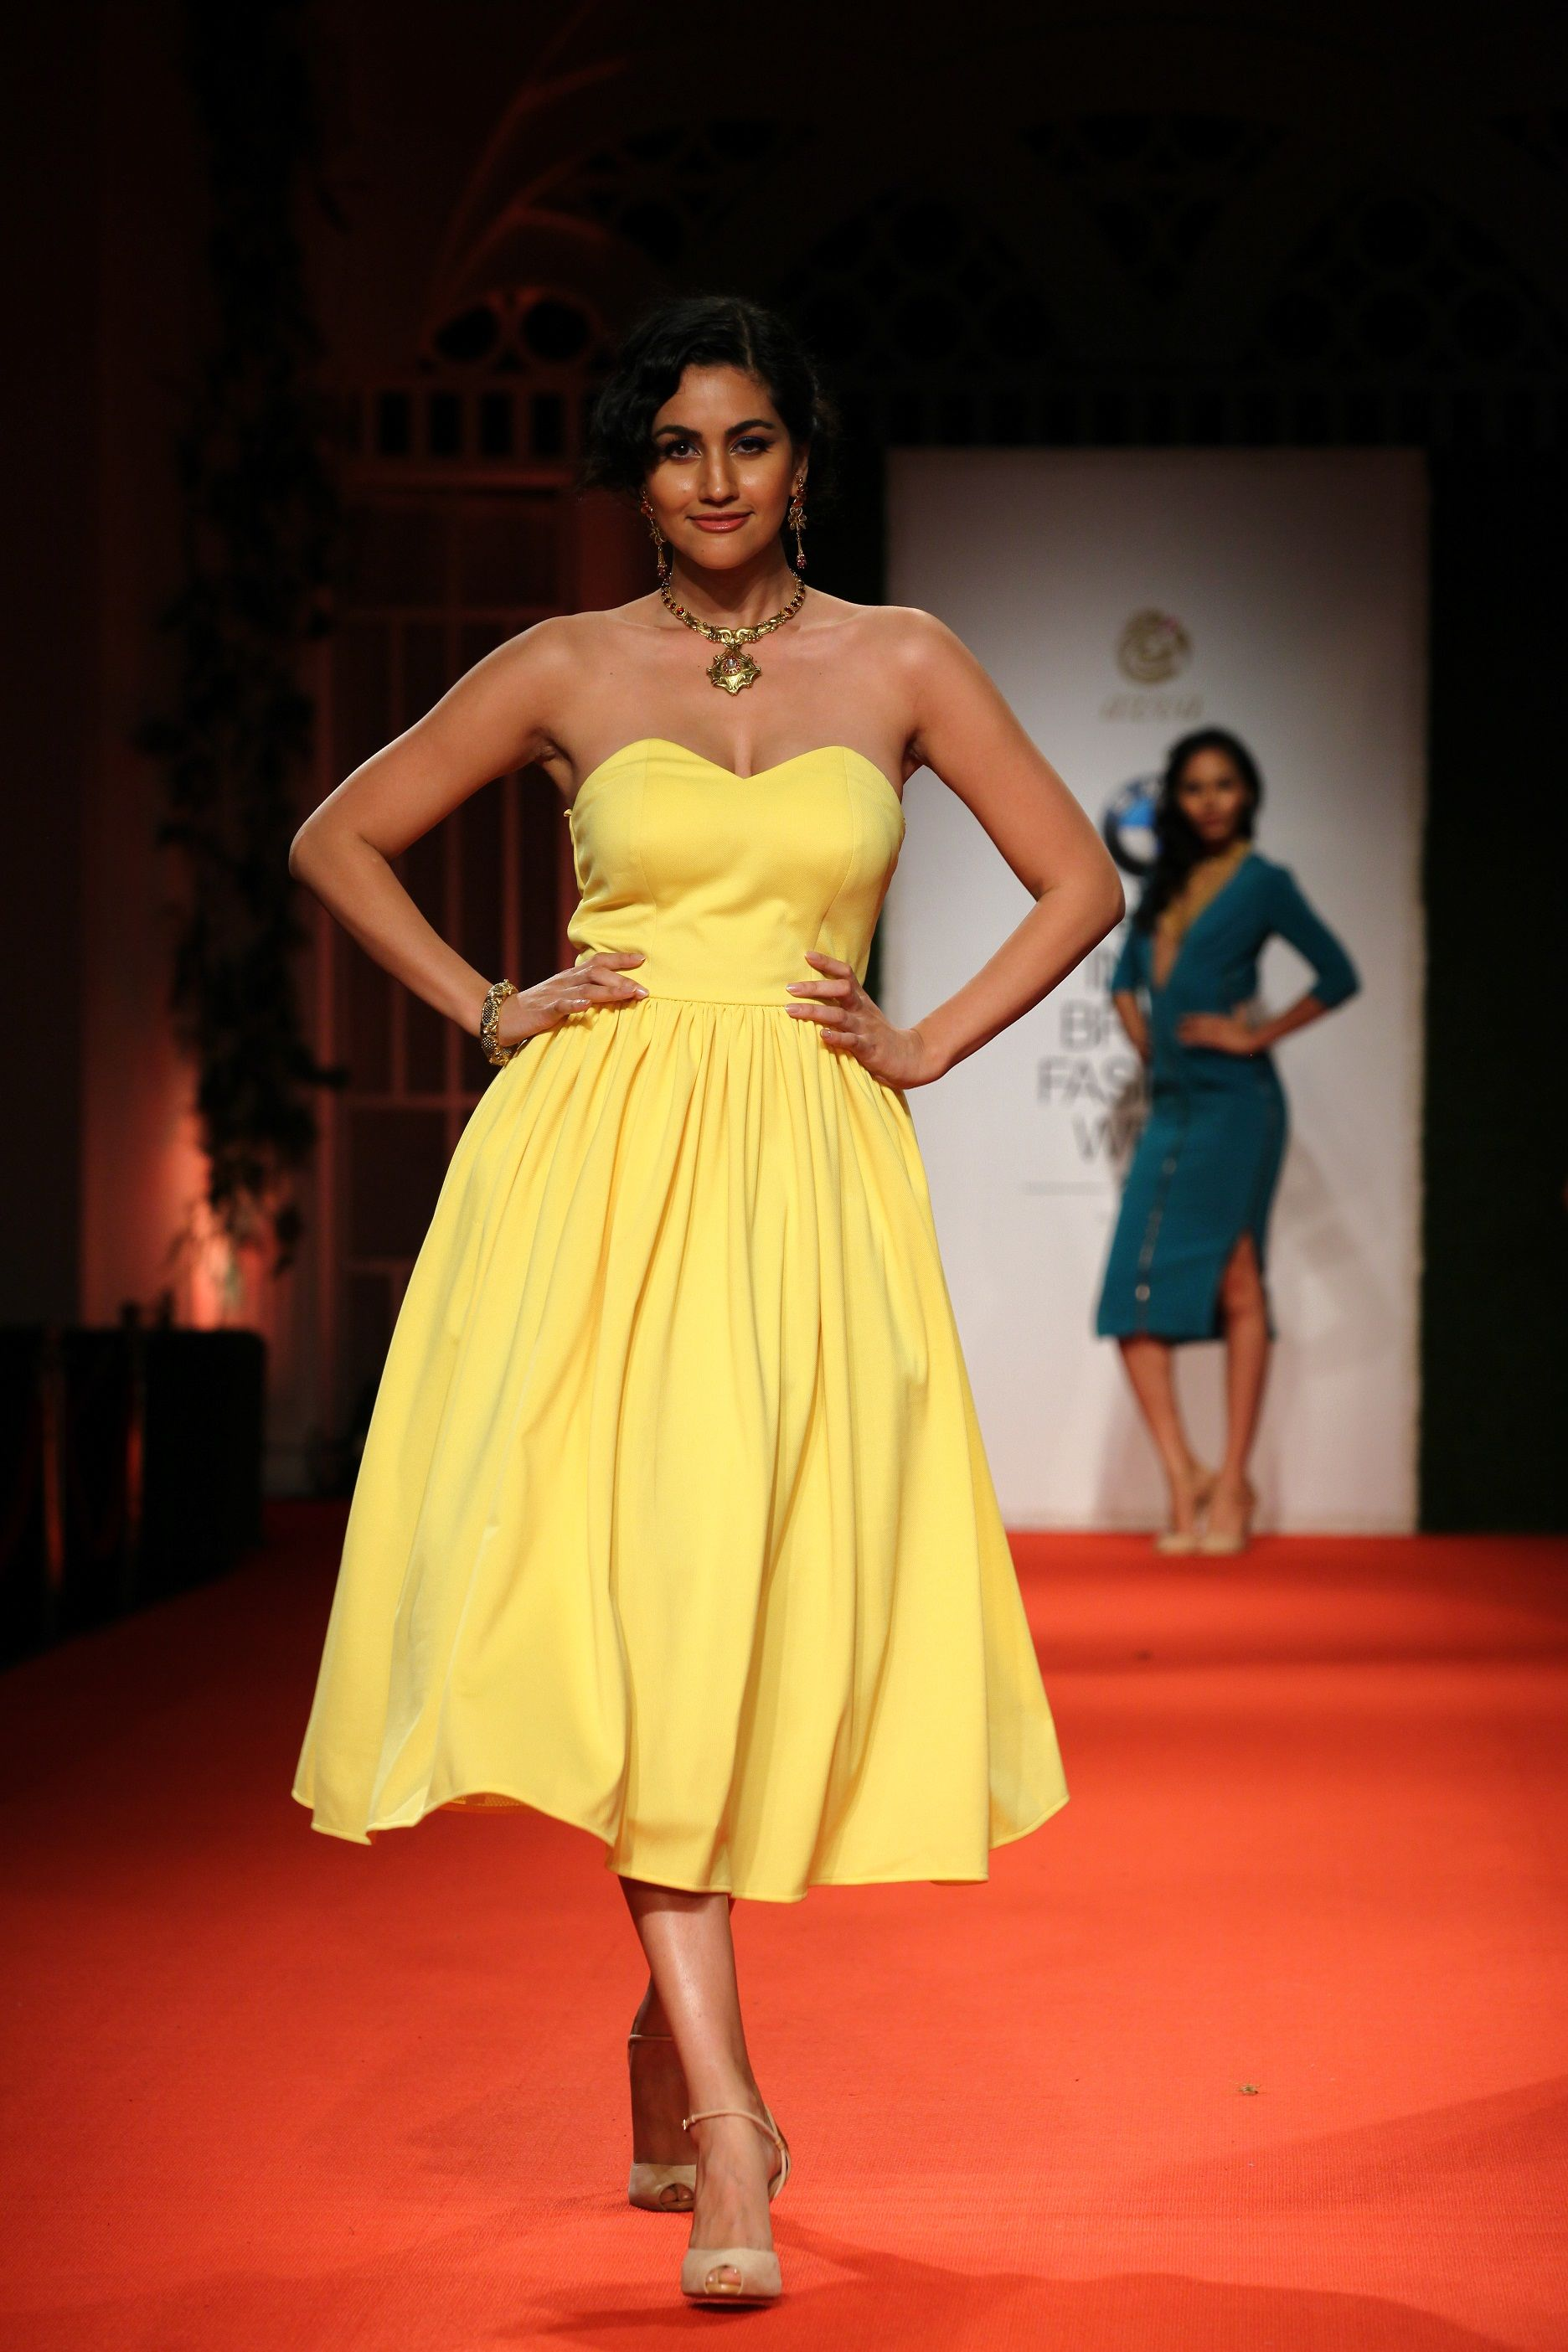 Azva Presents Gold Jewellery in its Most Elegant and Glamourous Avatar at BMW India Bridal Fashion Week 2014 in association with AZVA at DLF Emporio (3).jpg